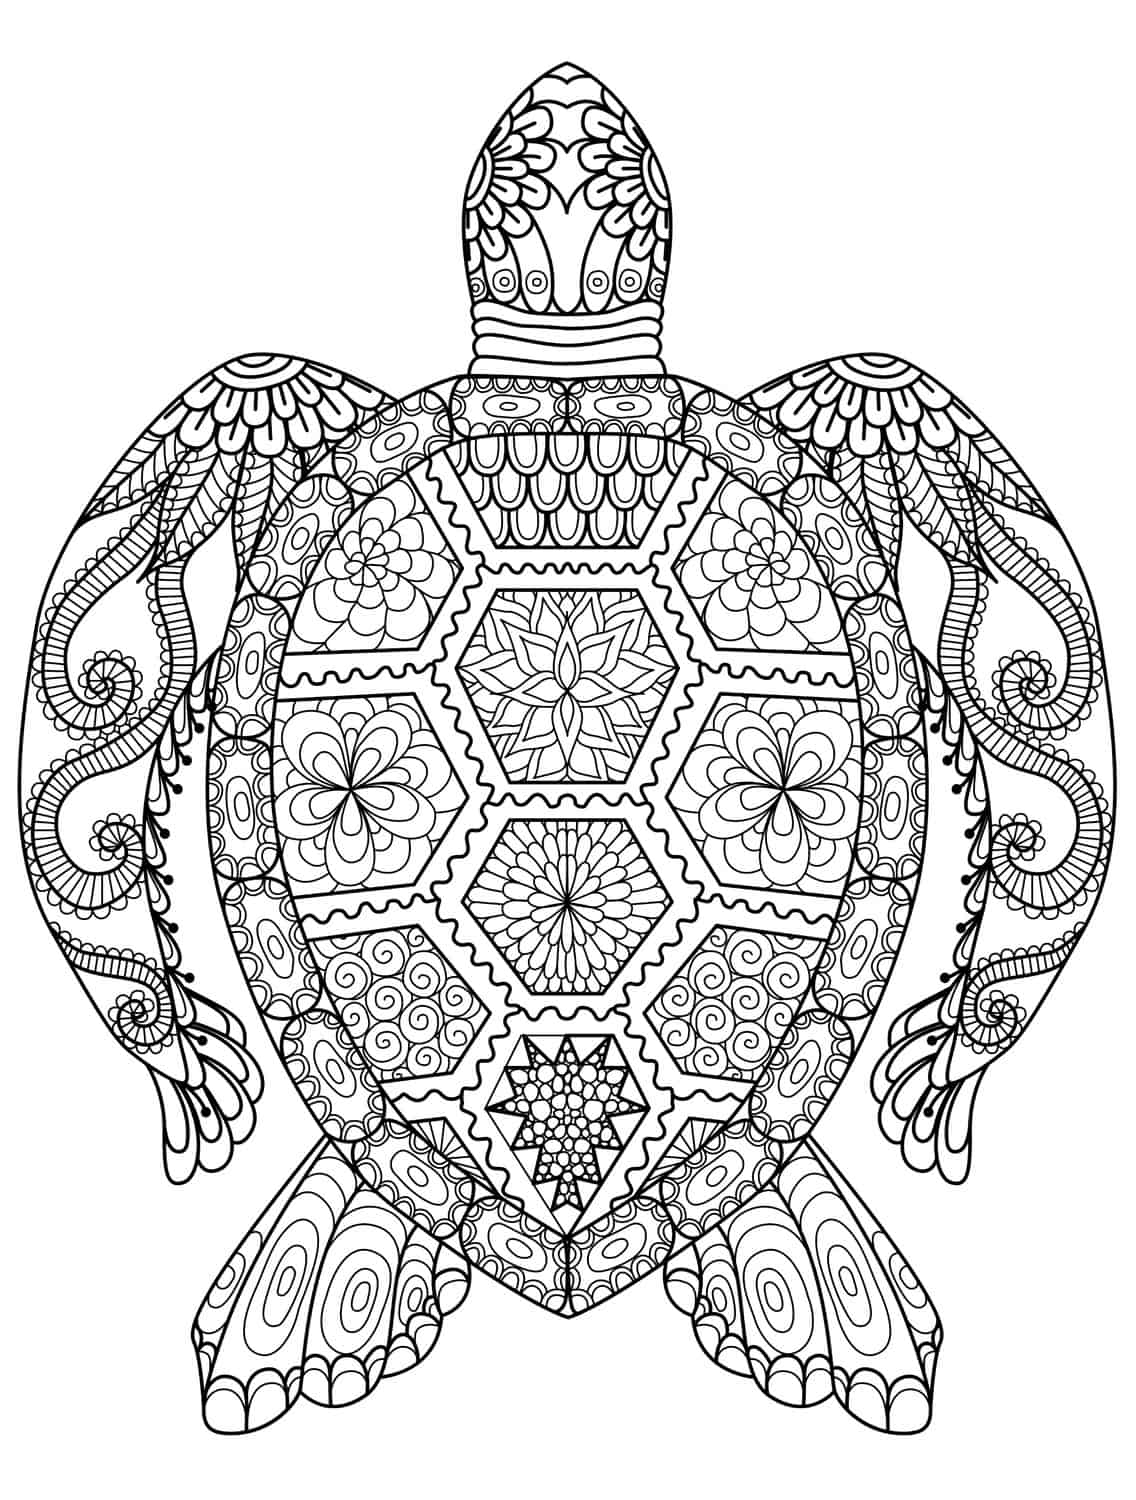 20 Gorgeous Free Printable Adult Coloring Pages Page 3 Of 22 Coloring Pages For Adults